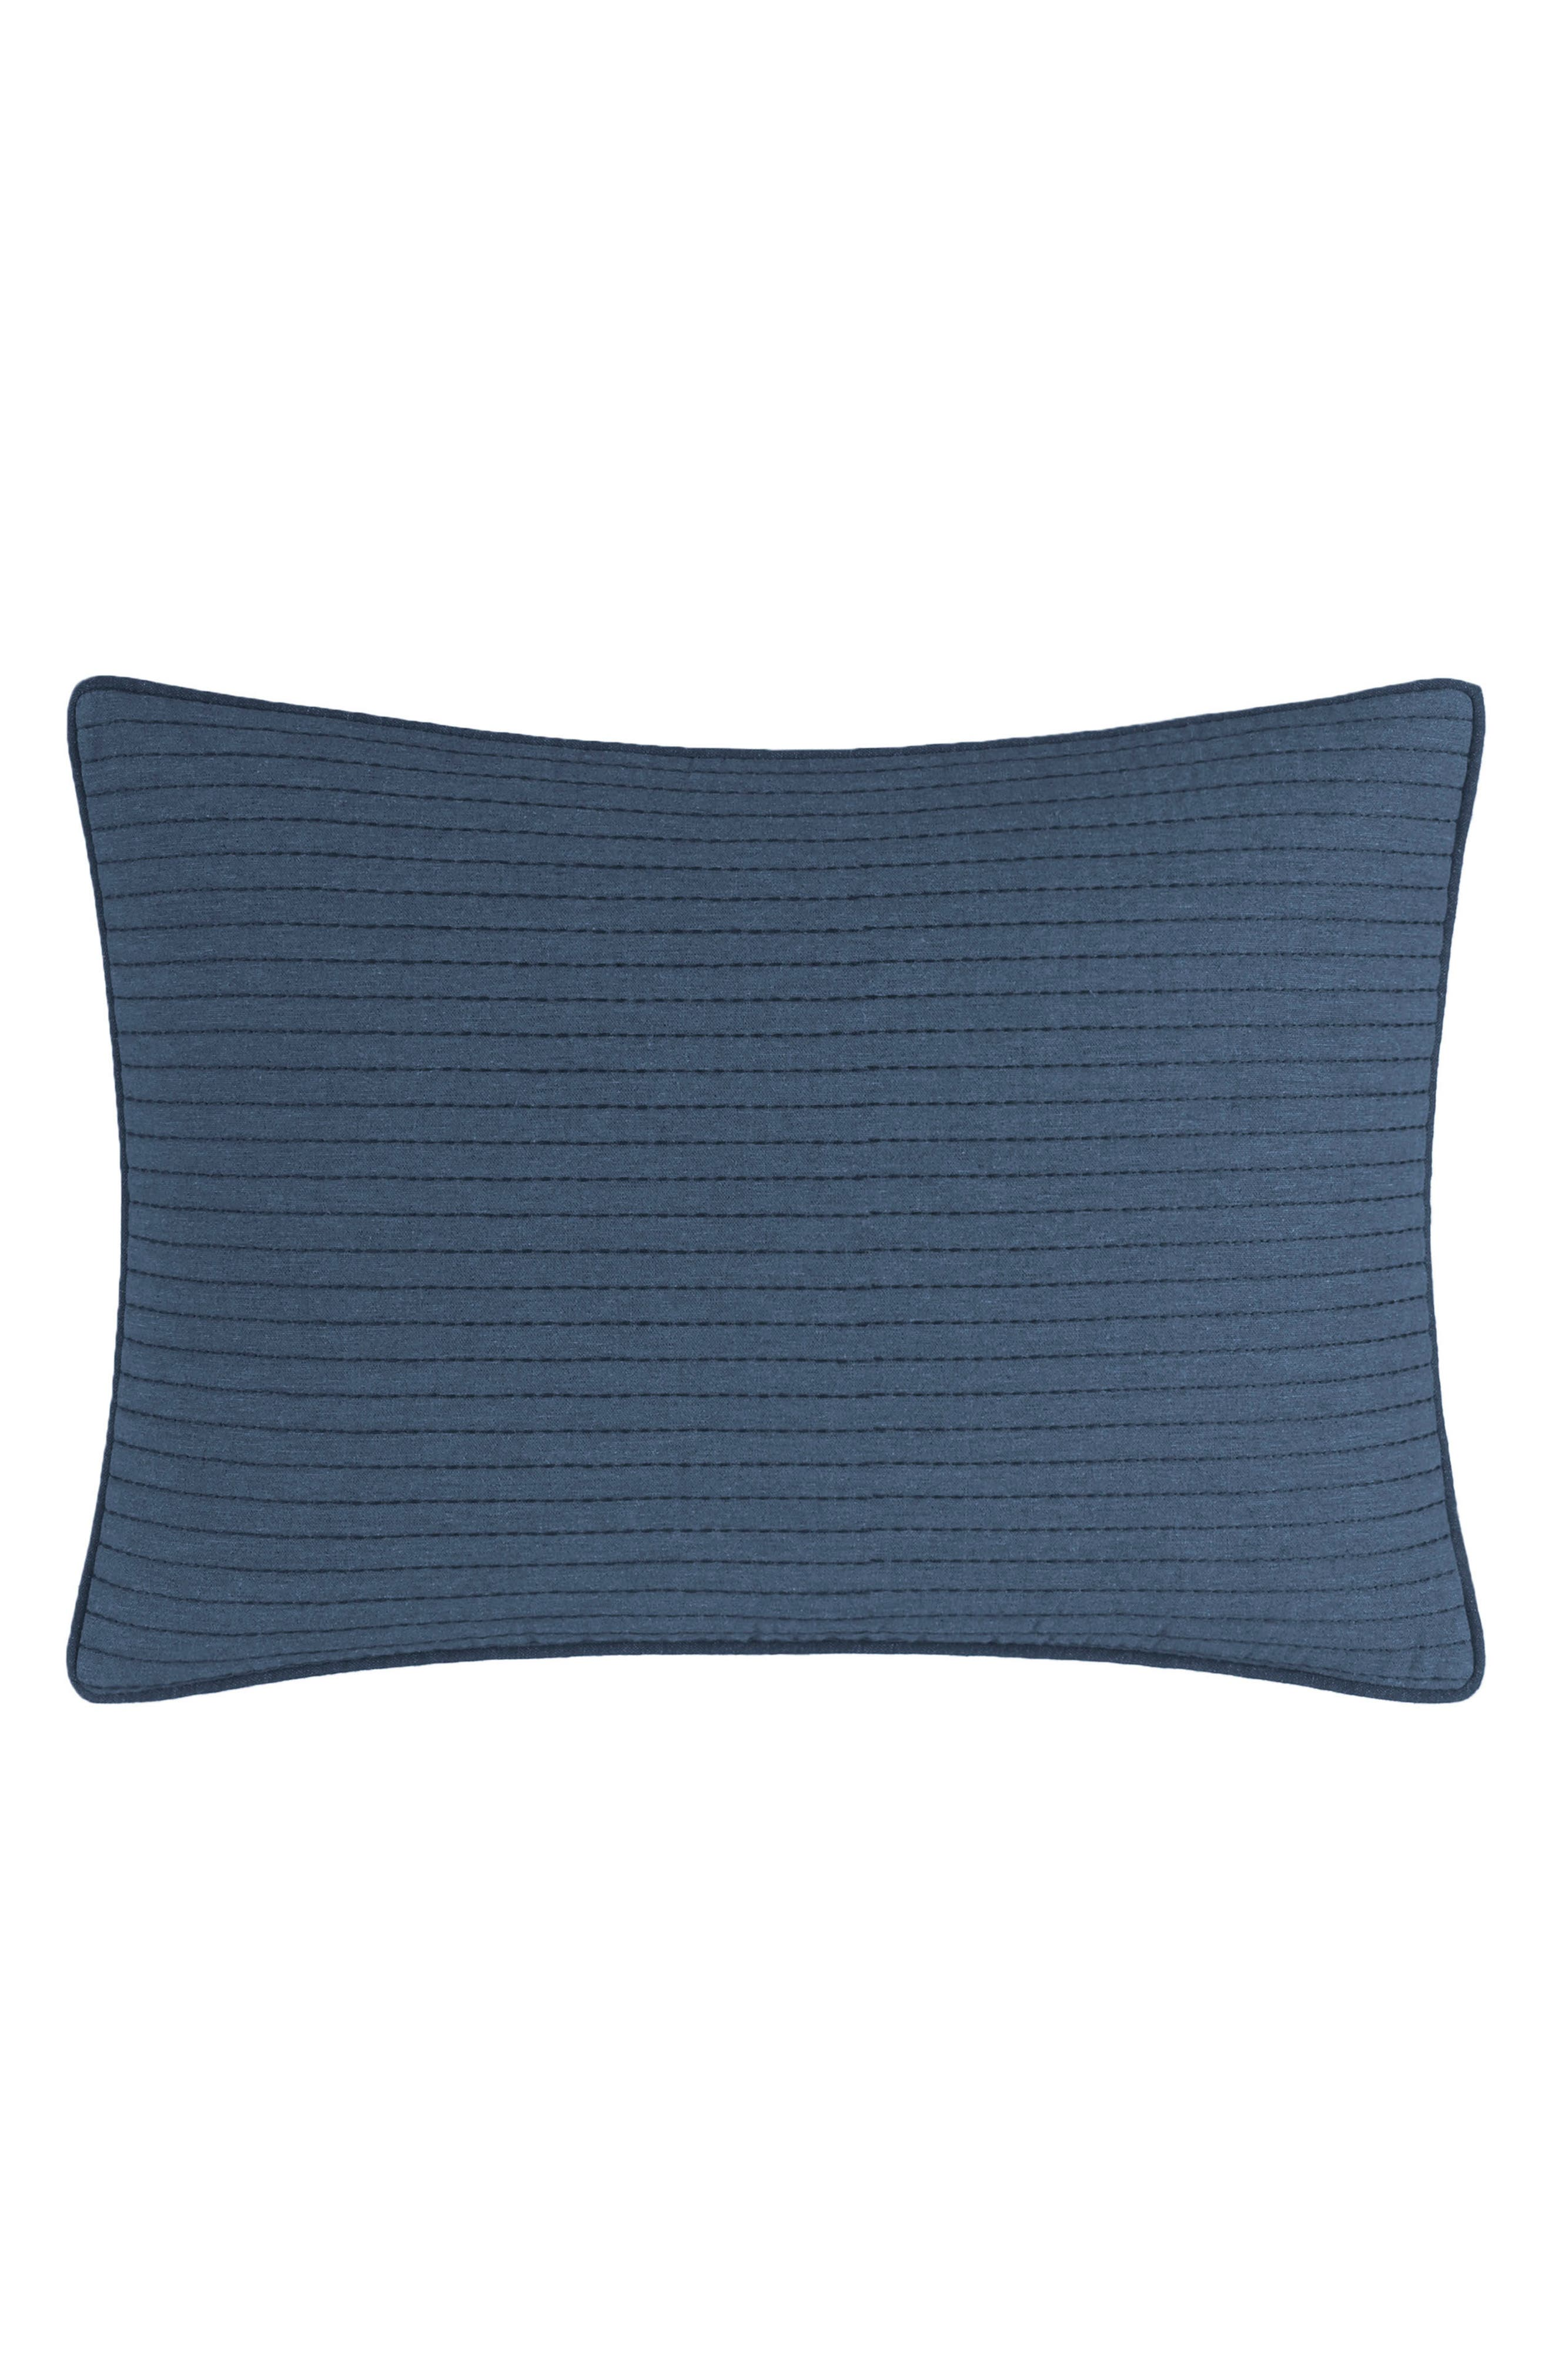 Lockridge Quilted Accent Pillow,                         Main,                         color, Dark Navy